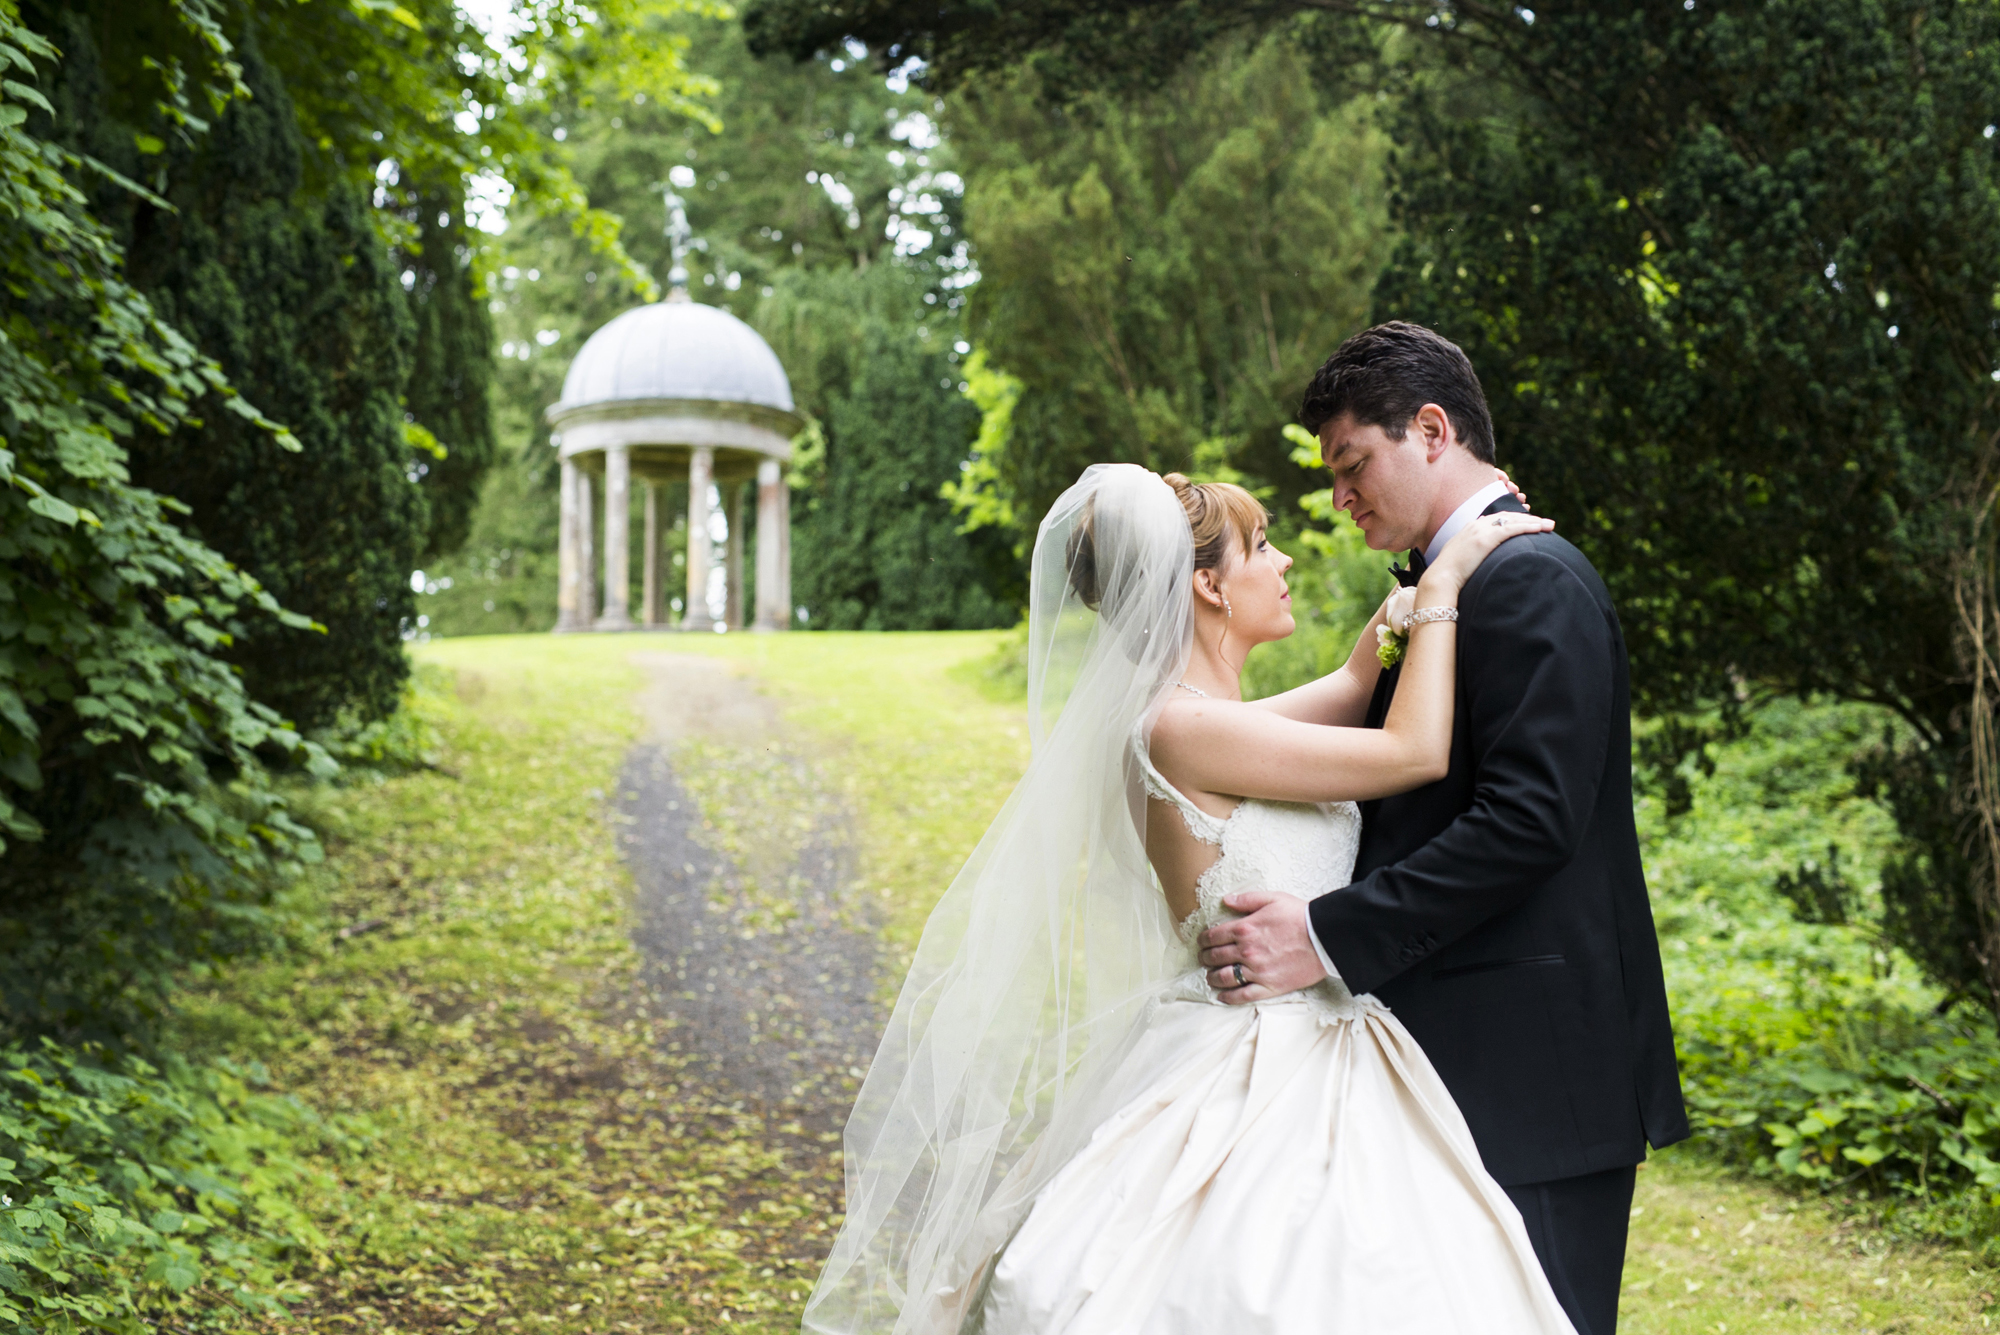 Wedding Planner,Luxury Wedding Venues Ireland,Wedding Couples,Temple of Mercury